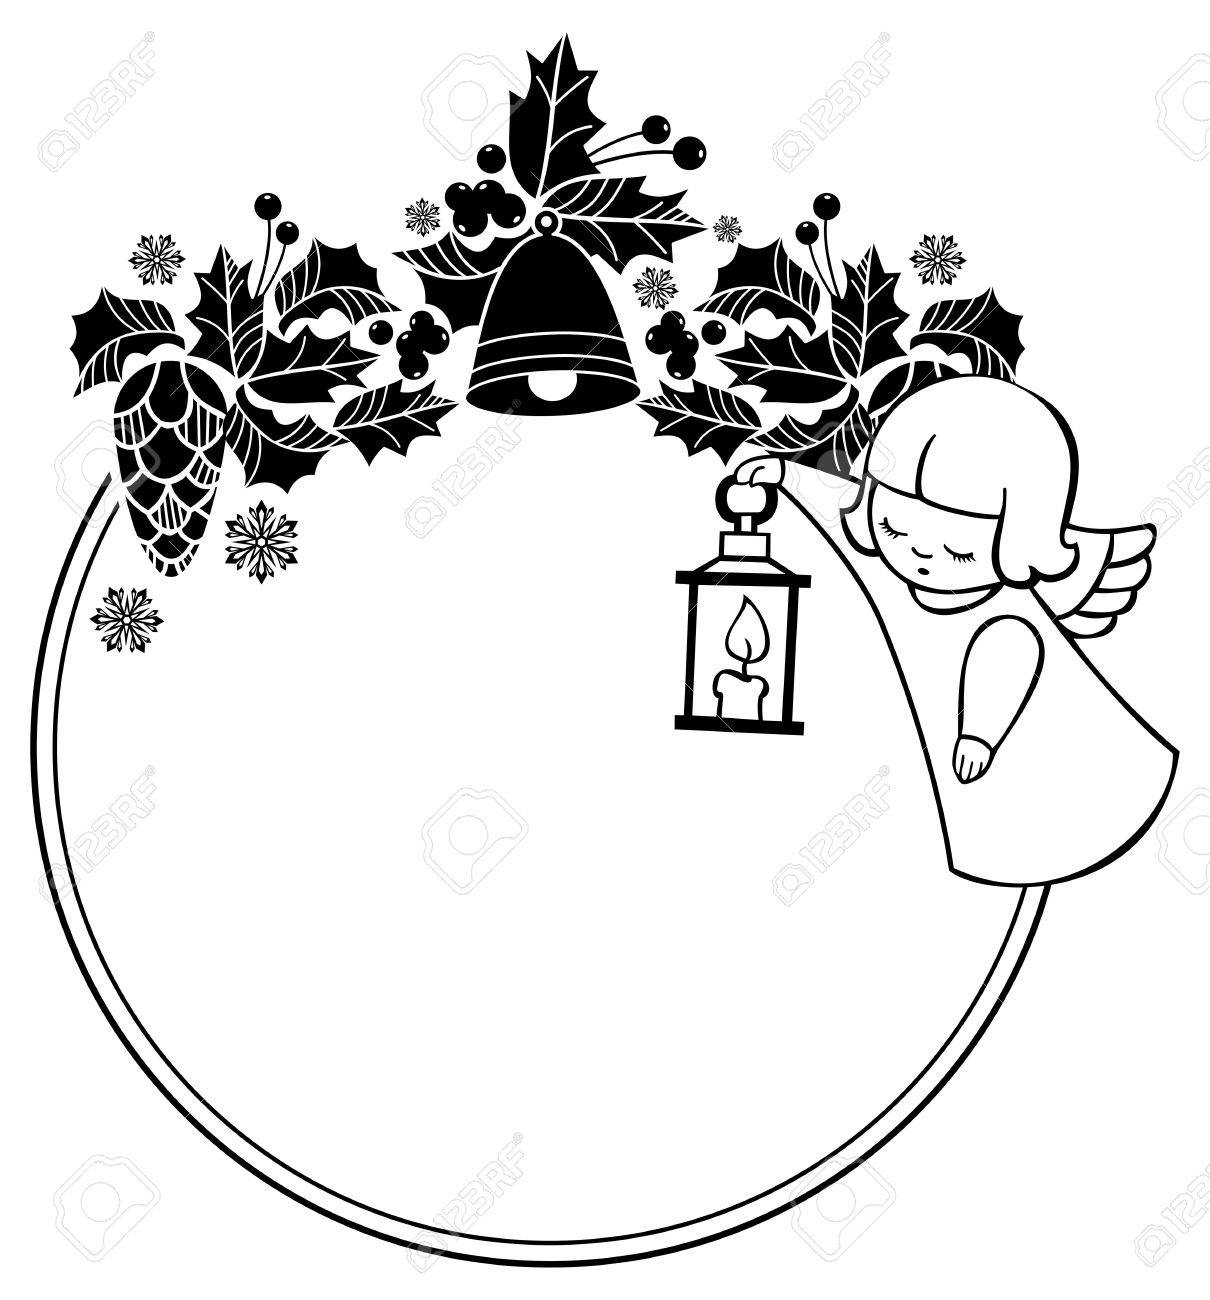 Vector Clip Art Black And White Rouen Christmas Frame With Cute Angels Copy Space Winter Holidays Background